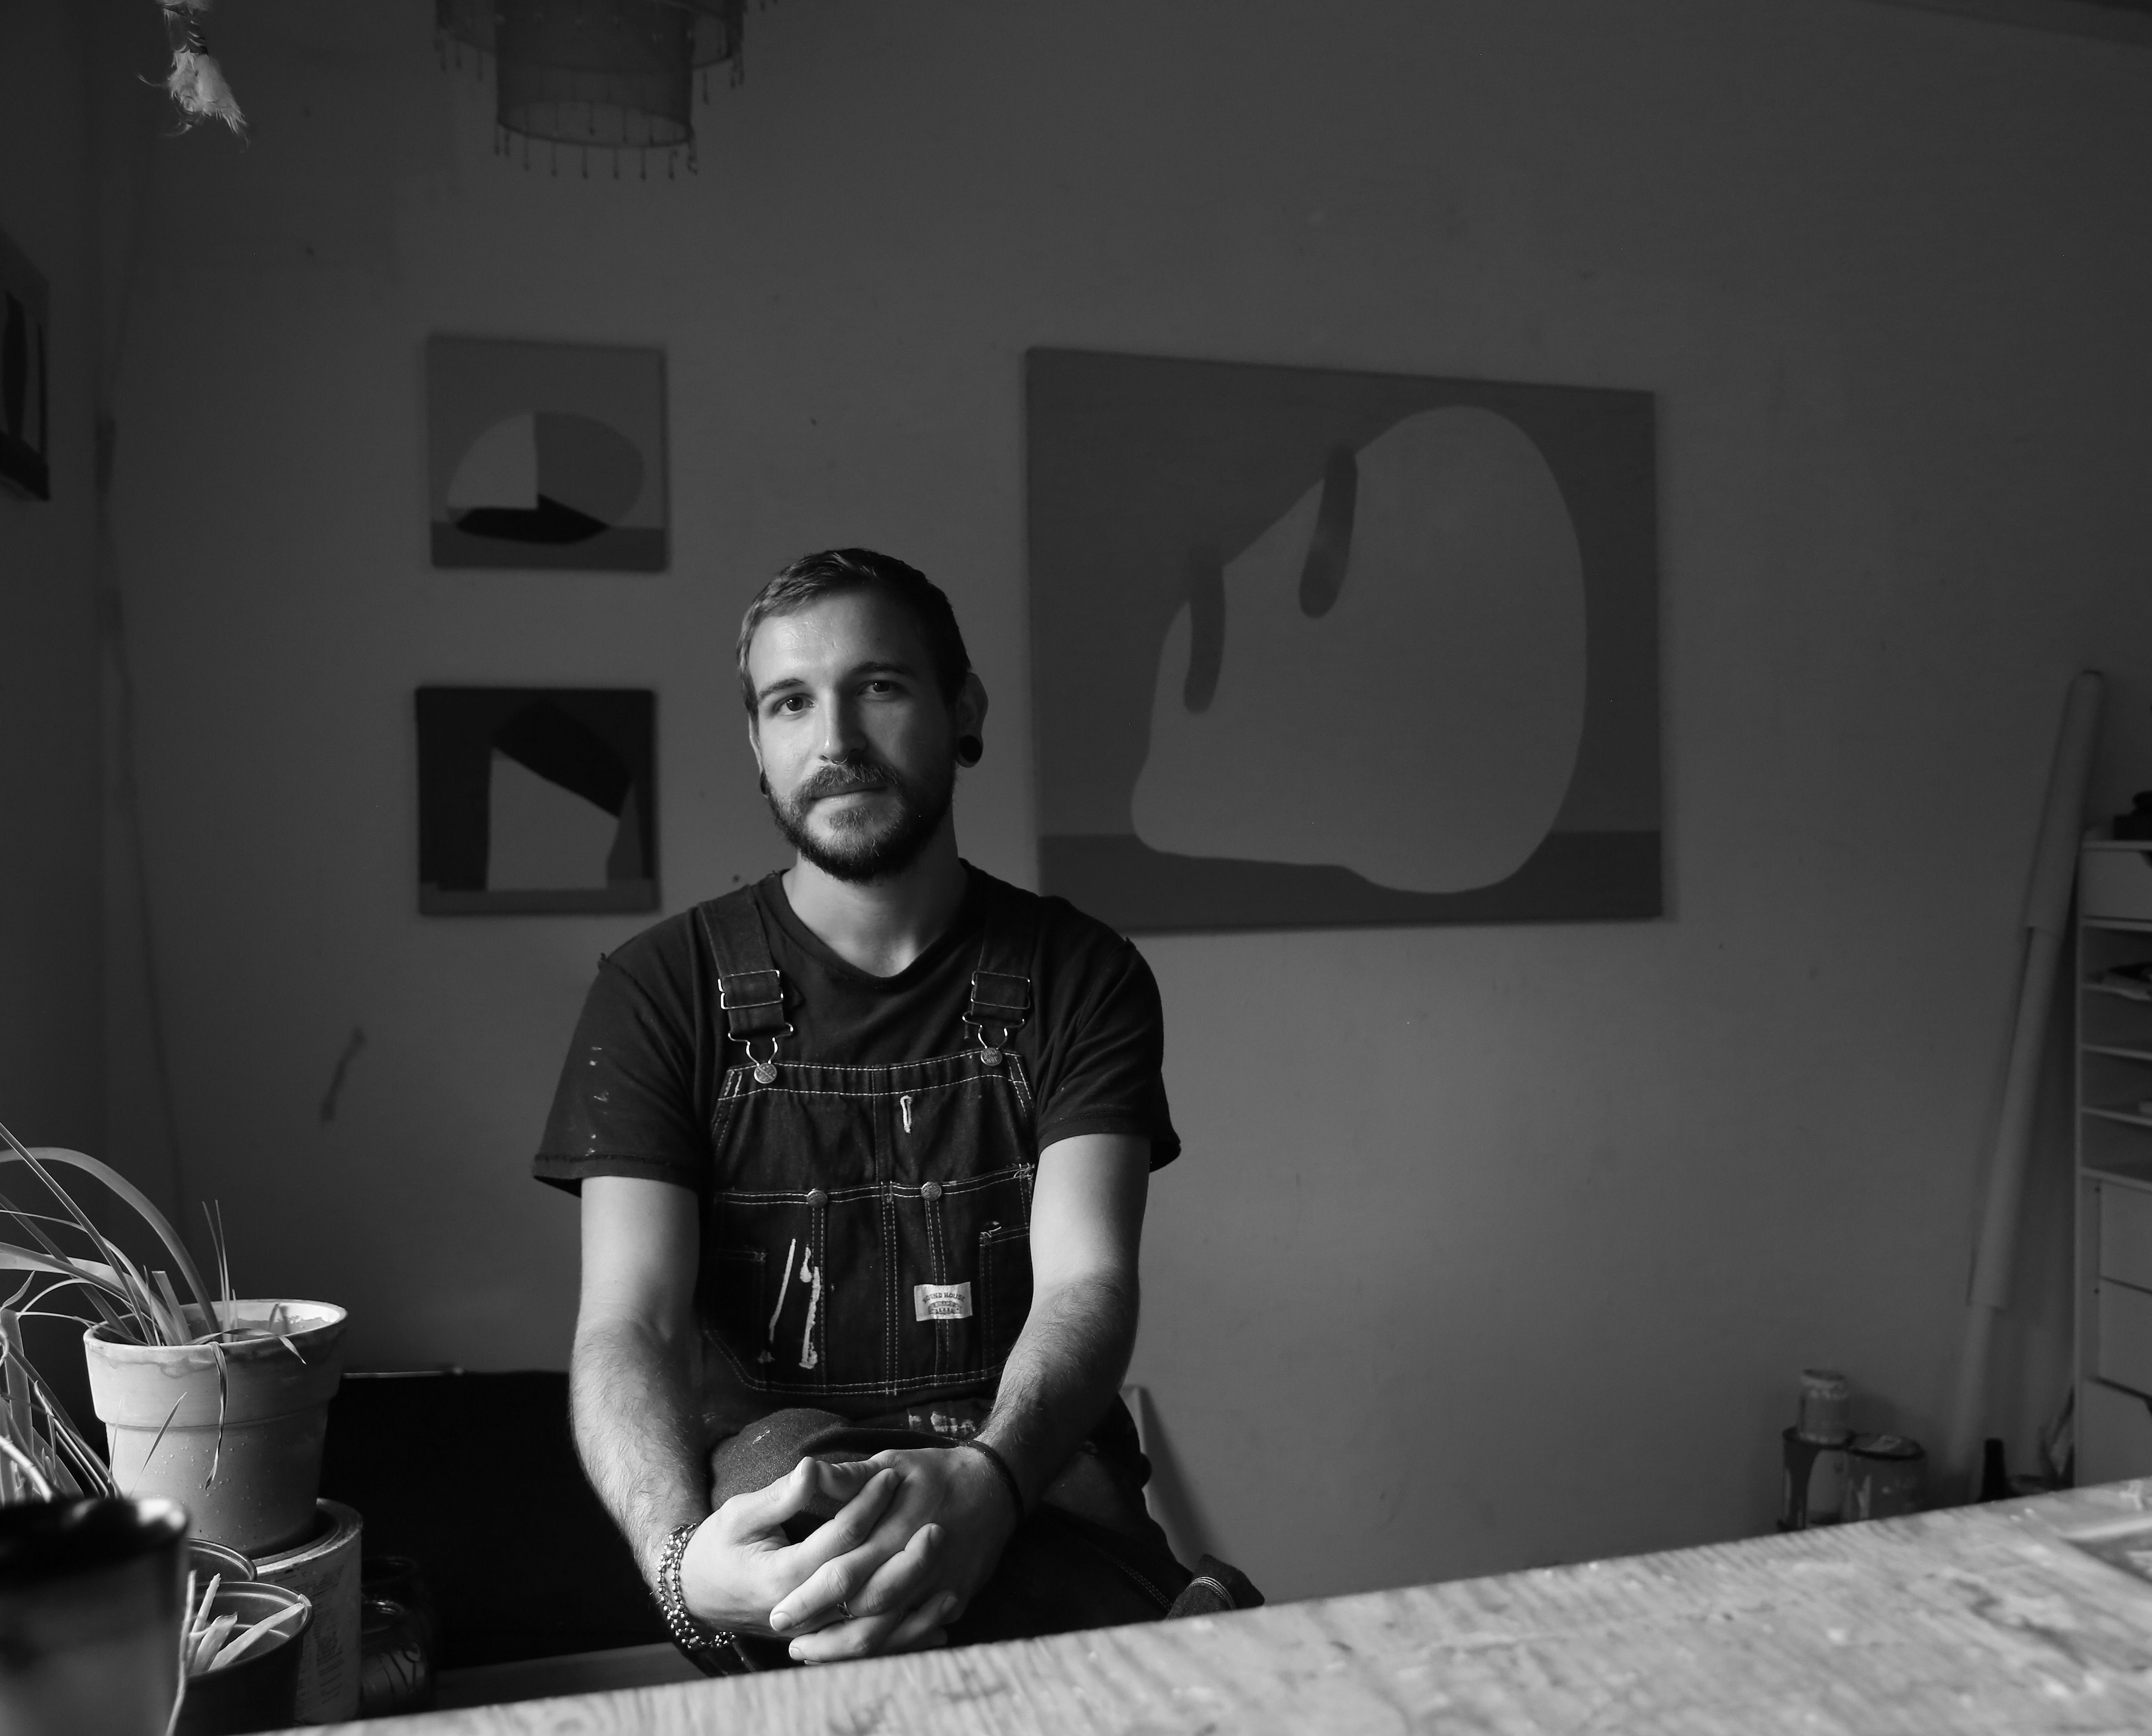 A figure in overalls poses for a photograph in an art studio